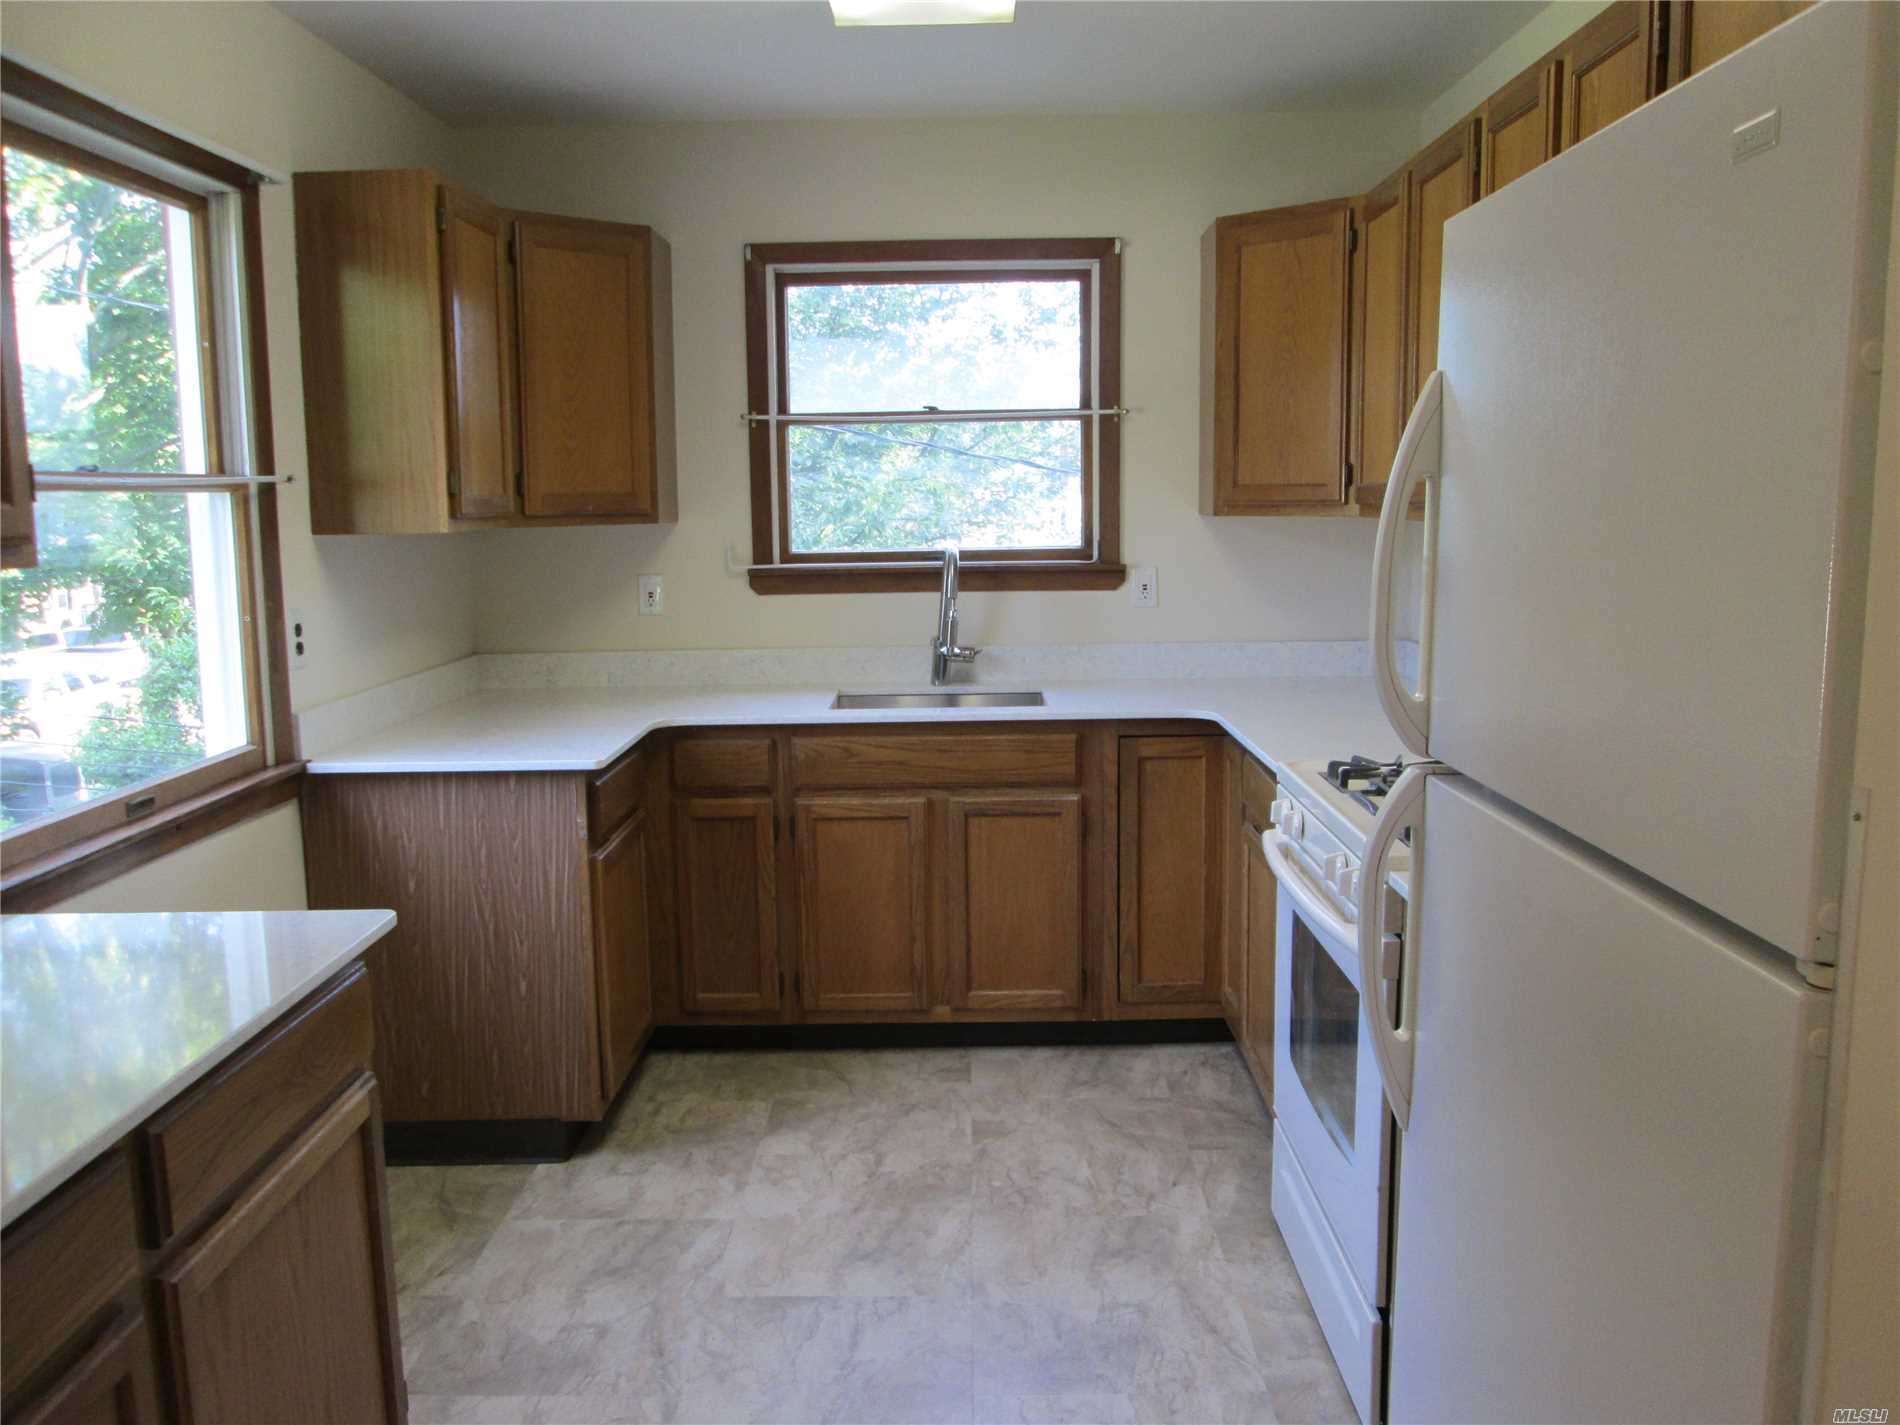 Immaculate 2 Bedroom Apartment Close To Shopping And Lirr. Plenty Of Storage. Separate Entrance. Off Street Parking. Please Note, Heat Is Included.Tenant Pays Cable And Electric. All Tenants Must Fill Out The Ntn Application Online. $25.00 On Credit Card.